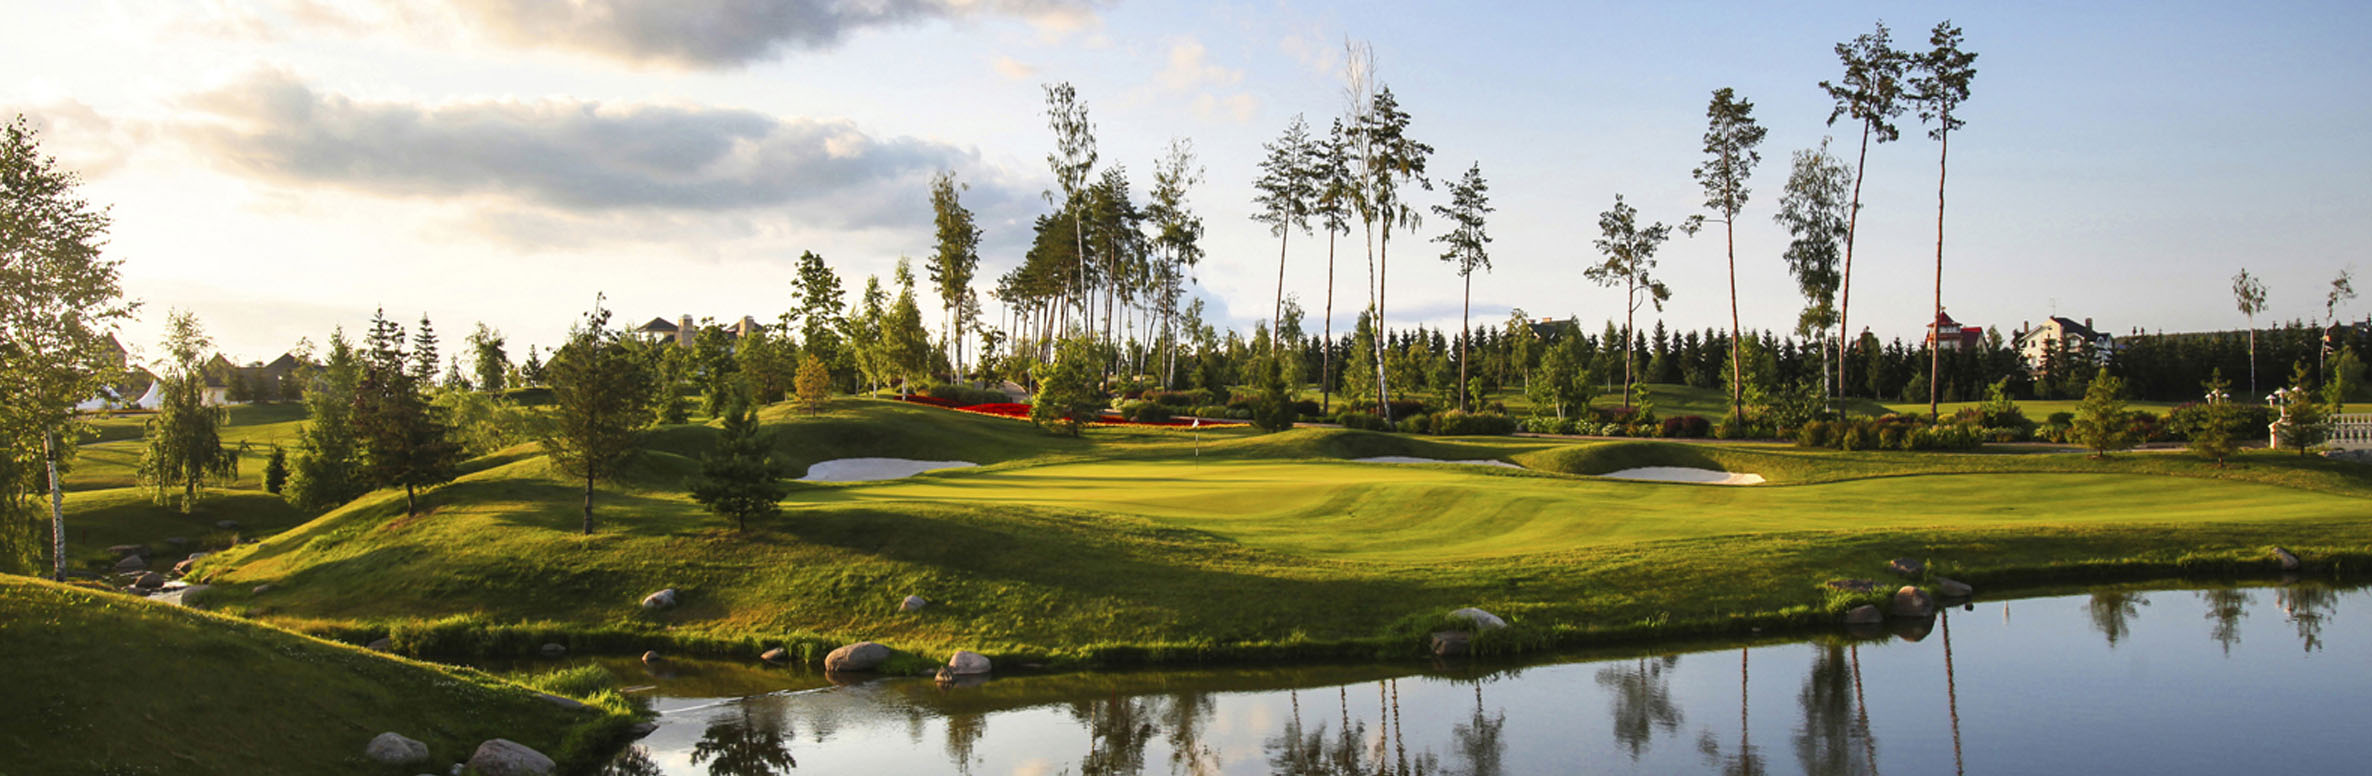 Golf Course Image - Agalarov Golf & Country Club No. 15